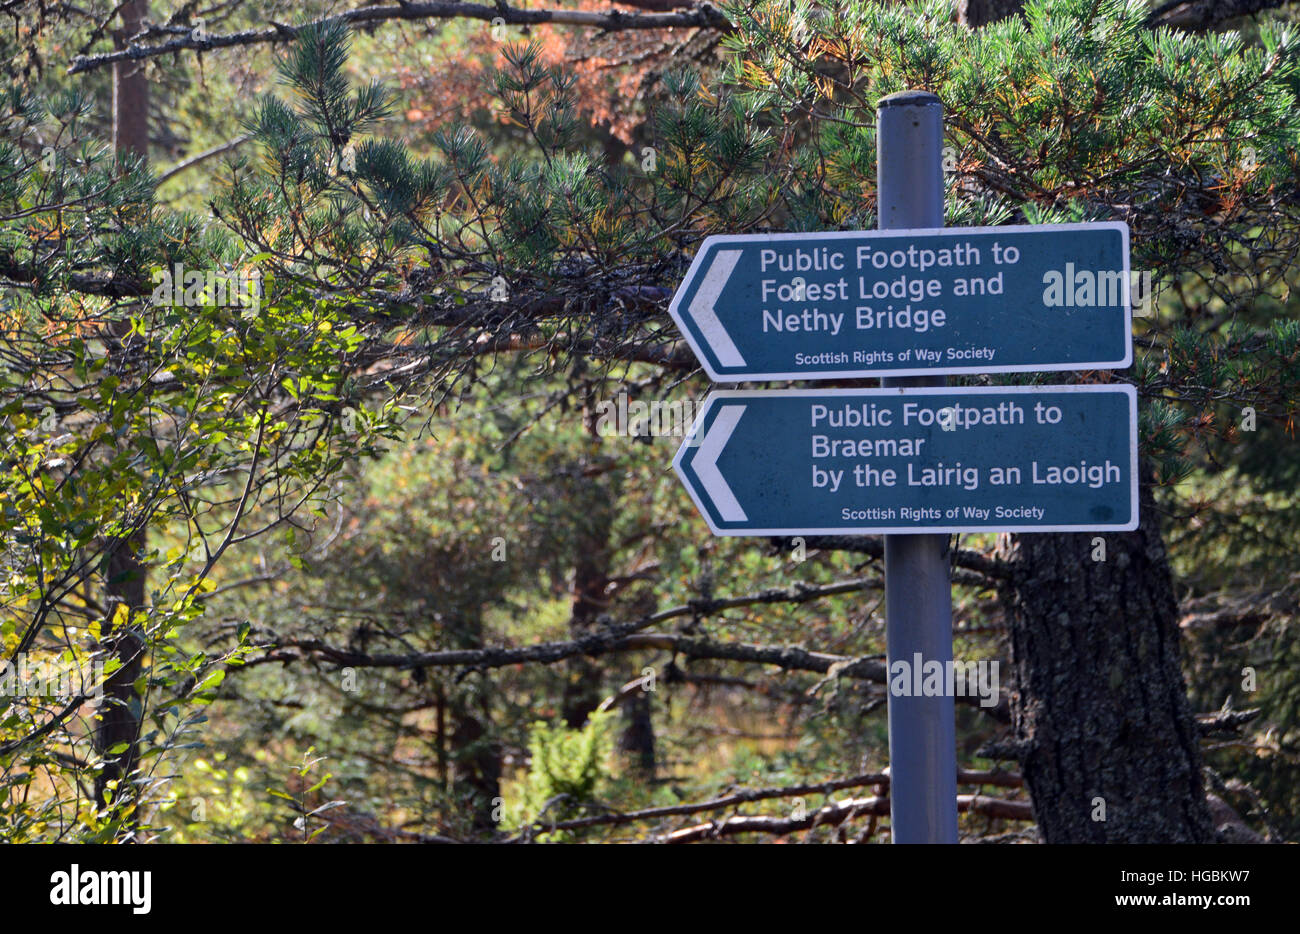 Metal Public Footpath Signpost to Forest Lodge & Nethy Bridge and Braemar & the Lairig an Laoigh from Glenmore Lodge. Stock Photo